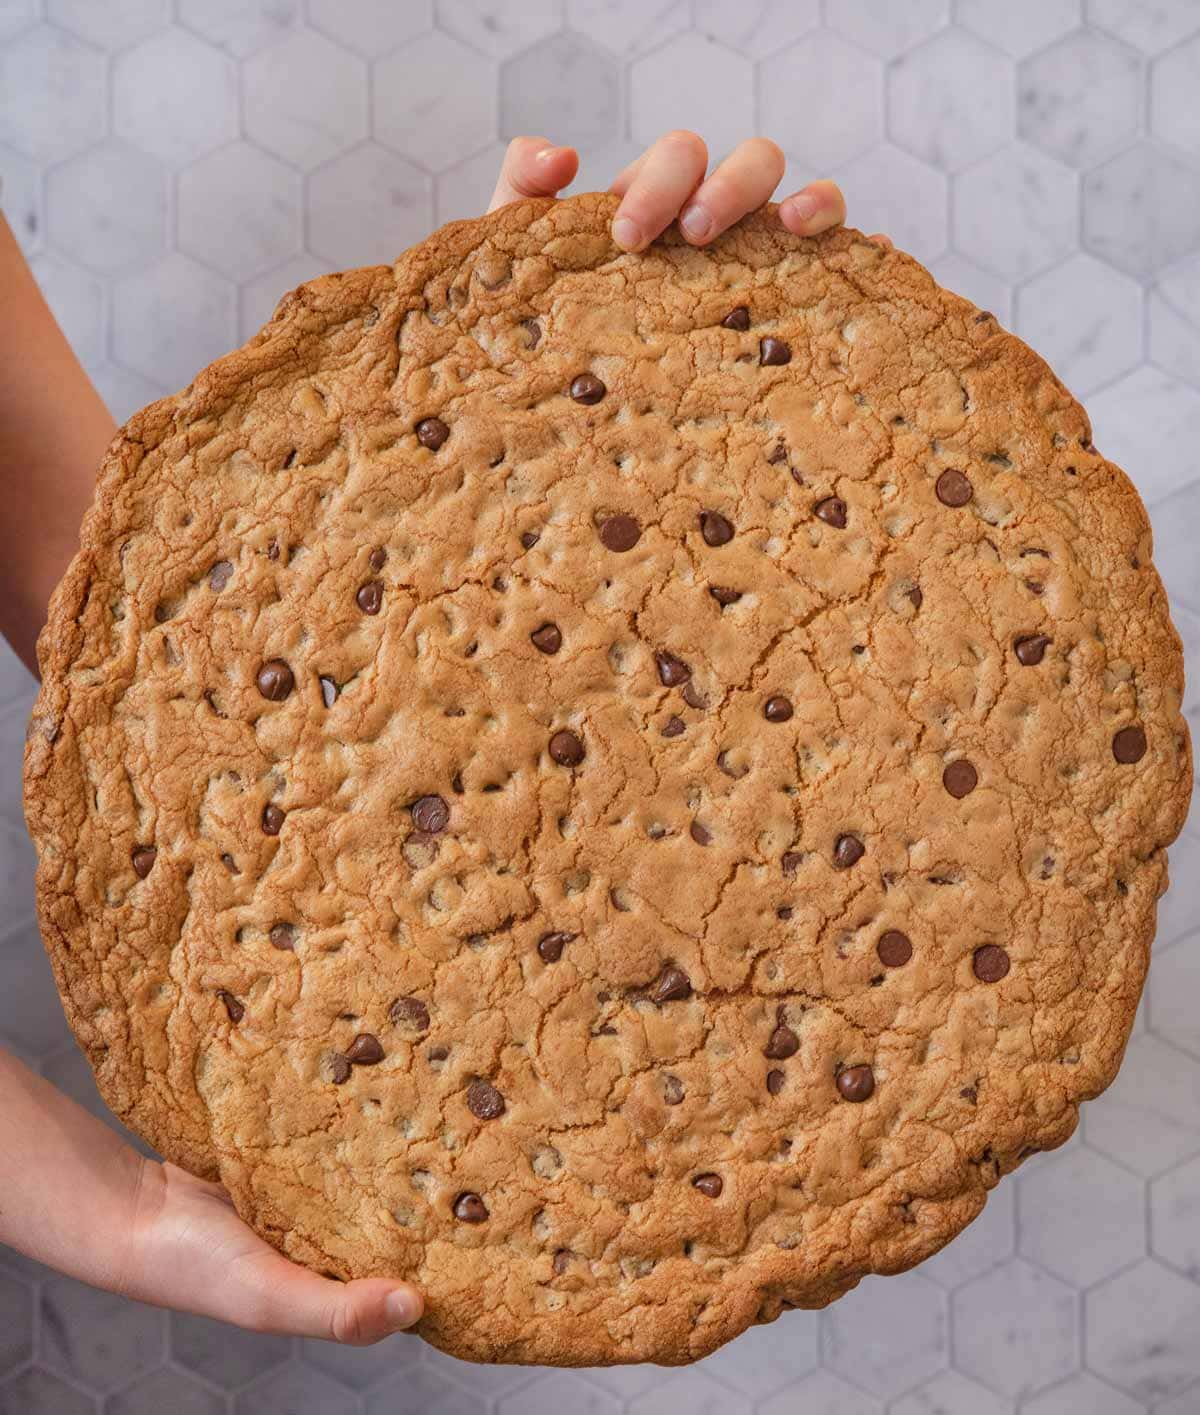 Giant Chocolate Chip Cookie held vertically